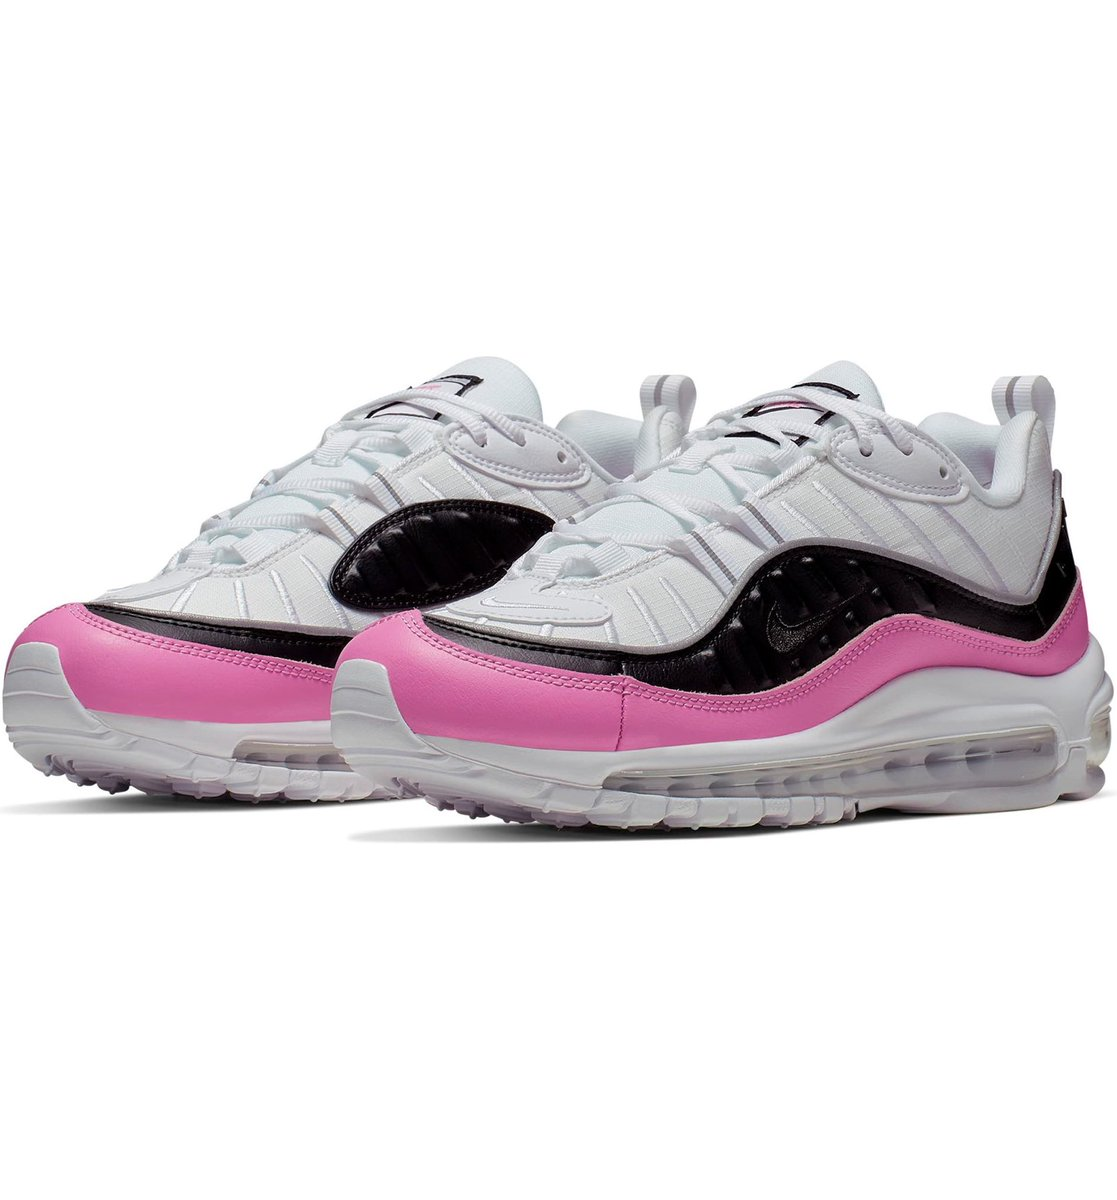 newest ae97a 1cfed SNKR_TWITR on Twitter: